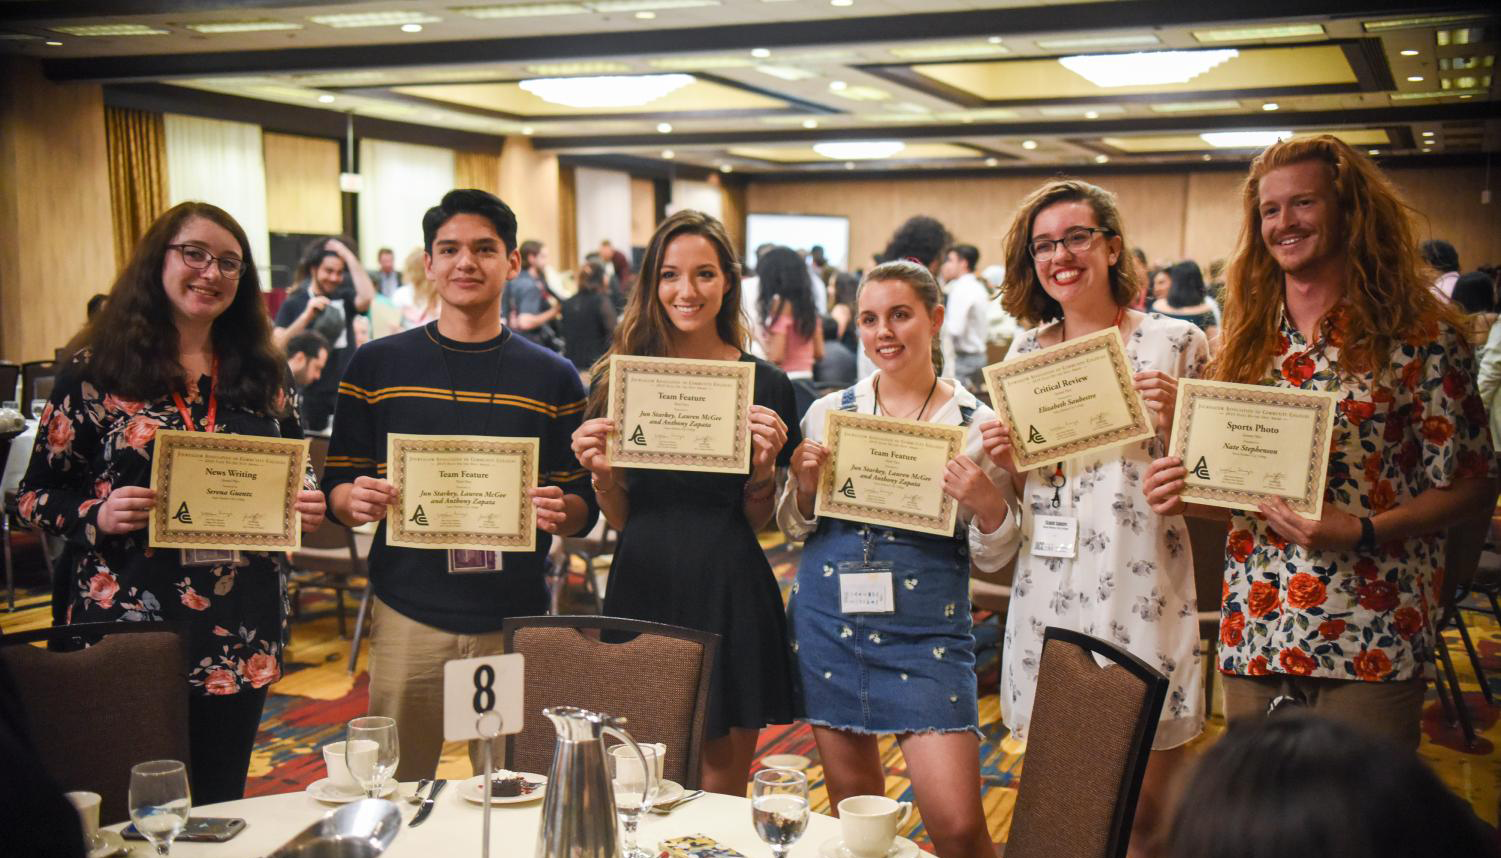 Santa Barbara City College journalism students winning awards.